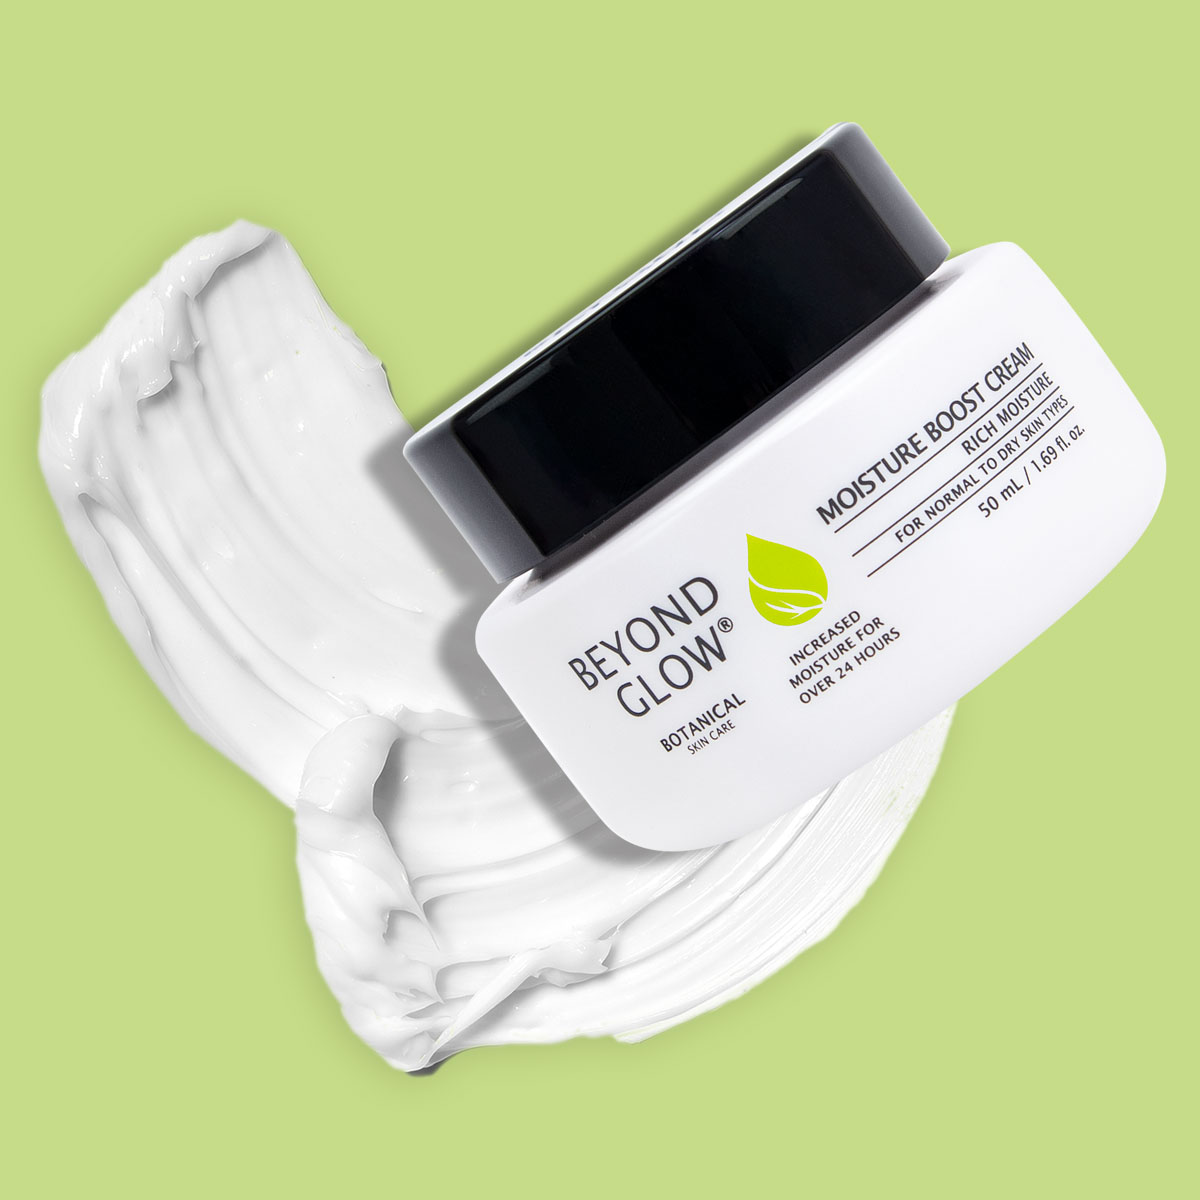 BeyondGlow-MoistureBoostCream-Green